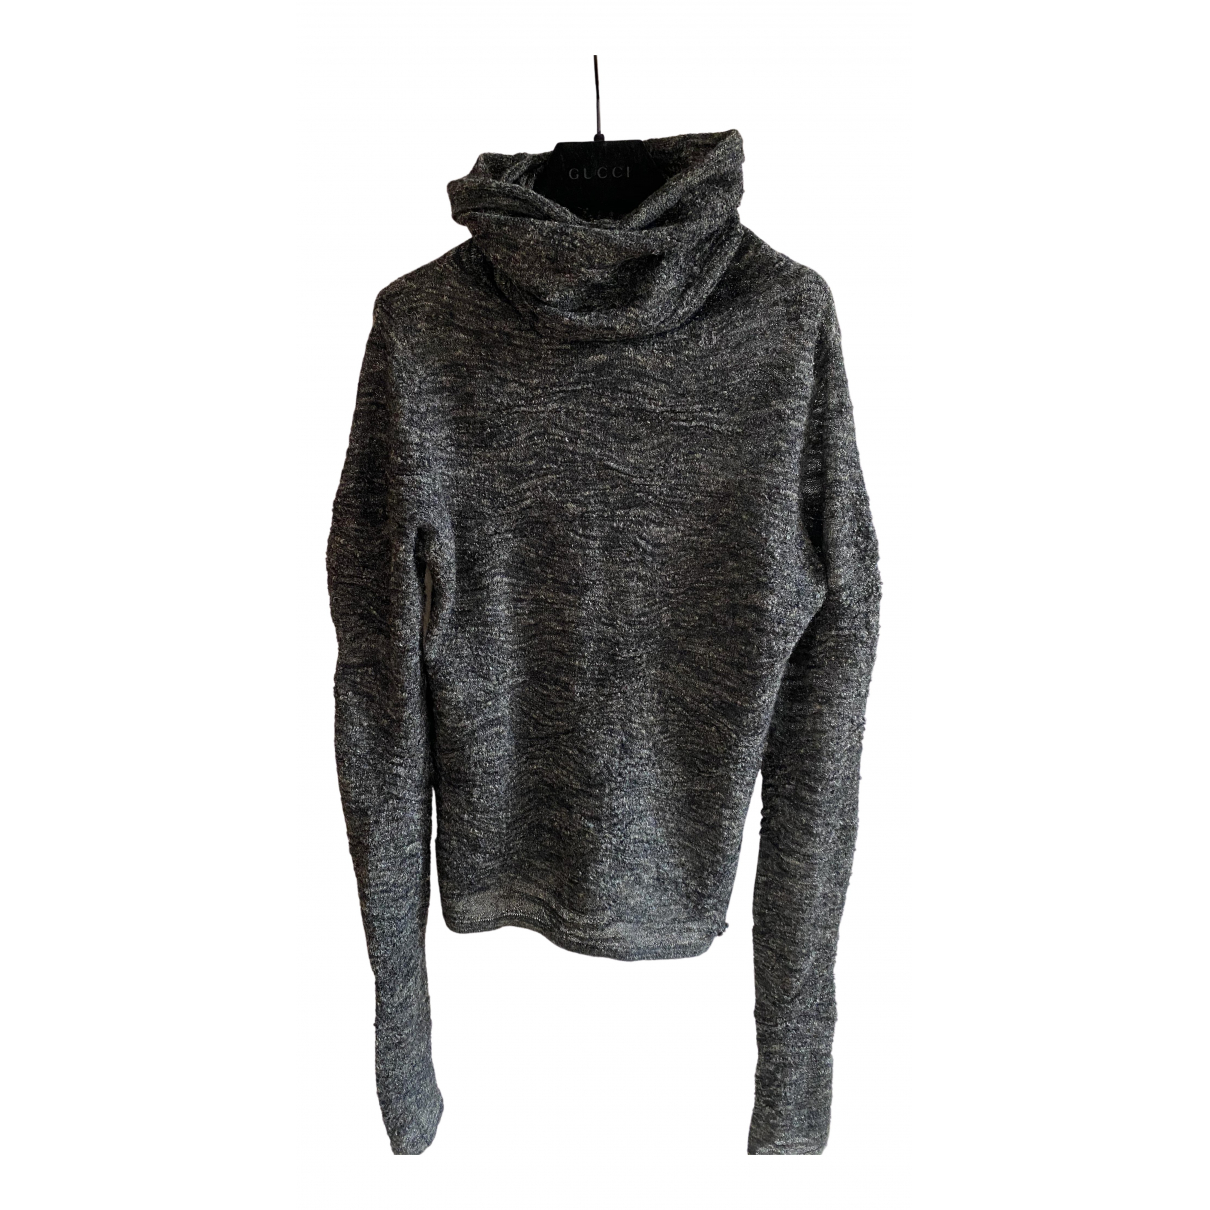 Chanel \N Pullover in  Grau Wolle